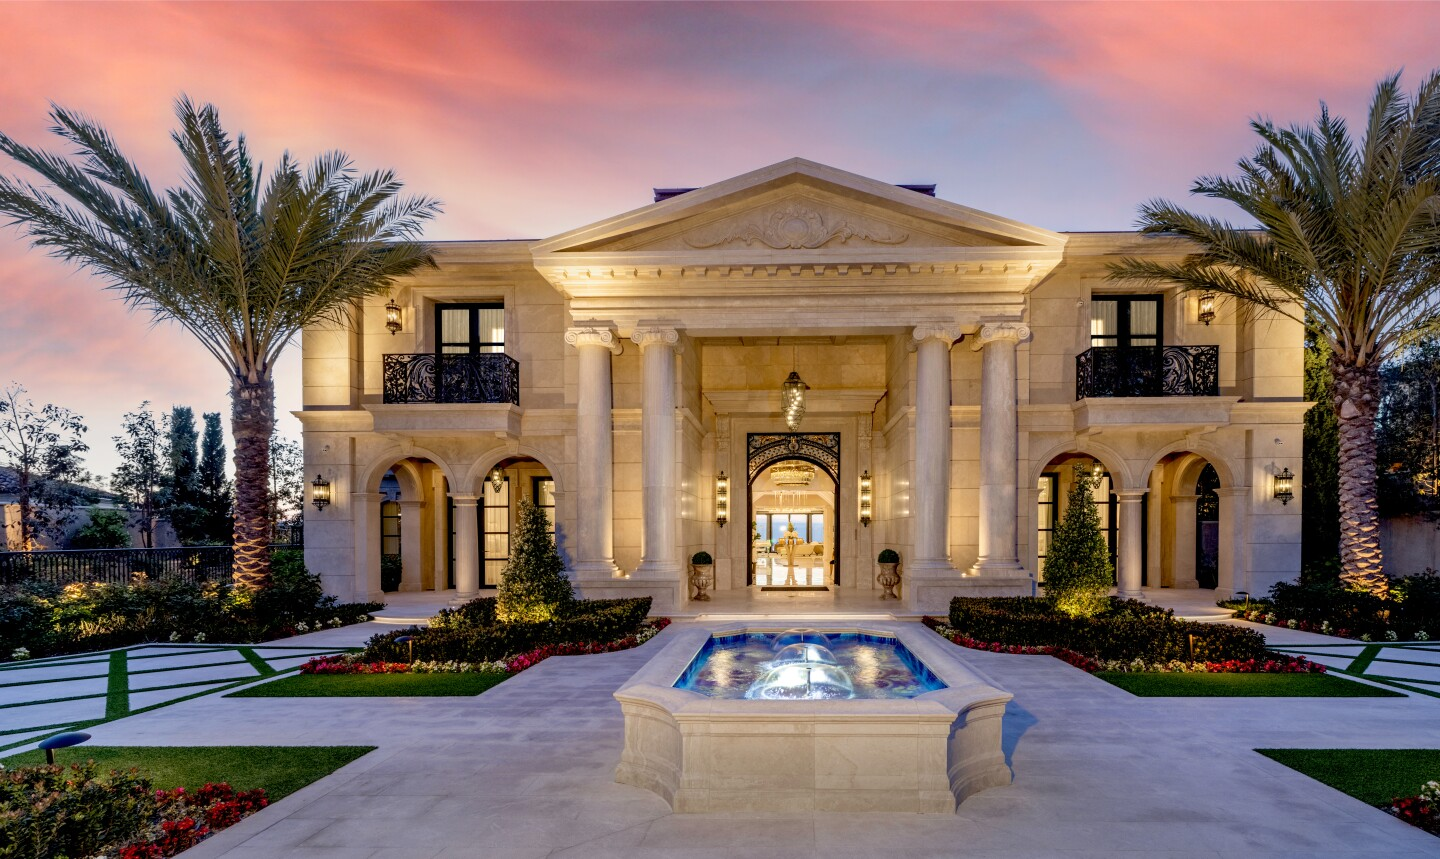 Built in 2021, the 15,500-square-foot palace features ostentatious amenities and hardware coated in 24-karat gold.